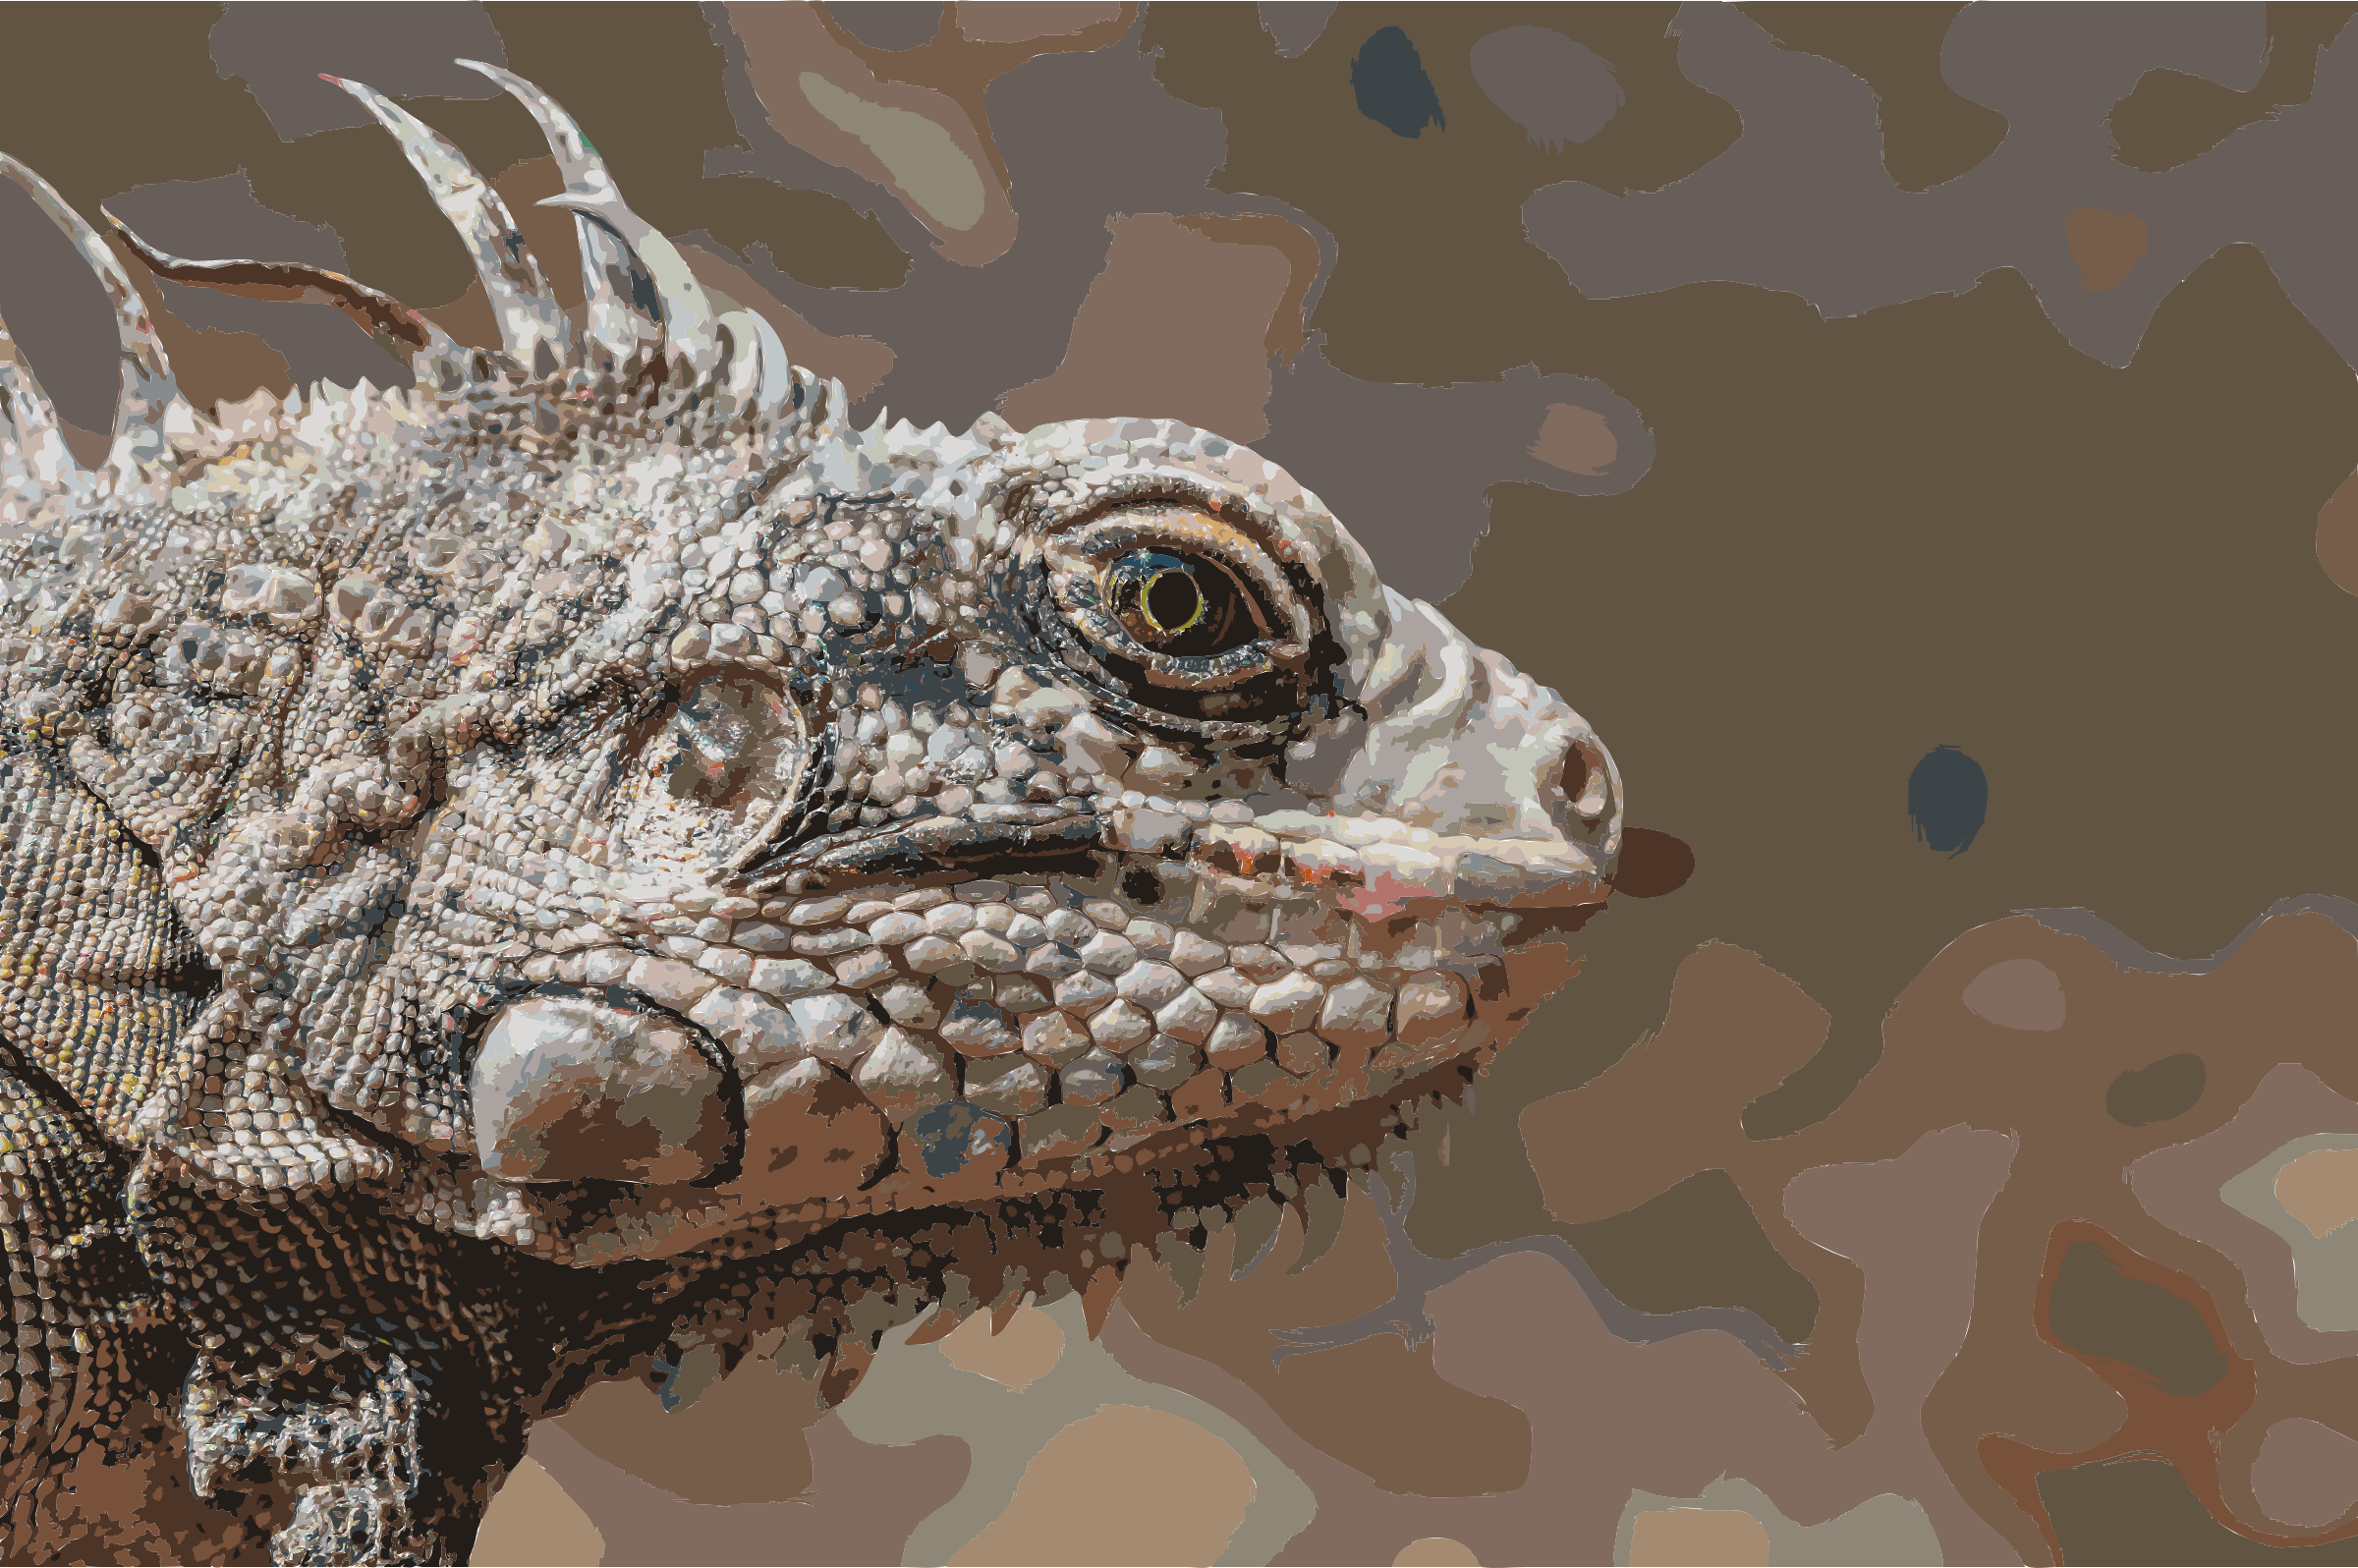 Endangered species Iguana Iguana from Margarita Island by 5mee4d+cgehjn4ybt98o